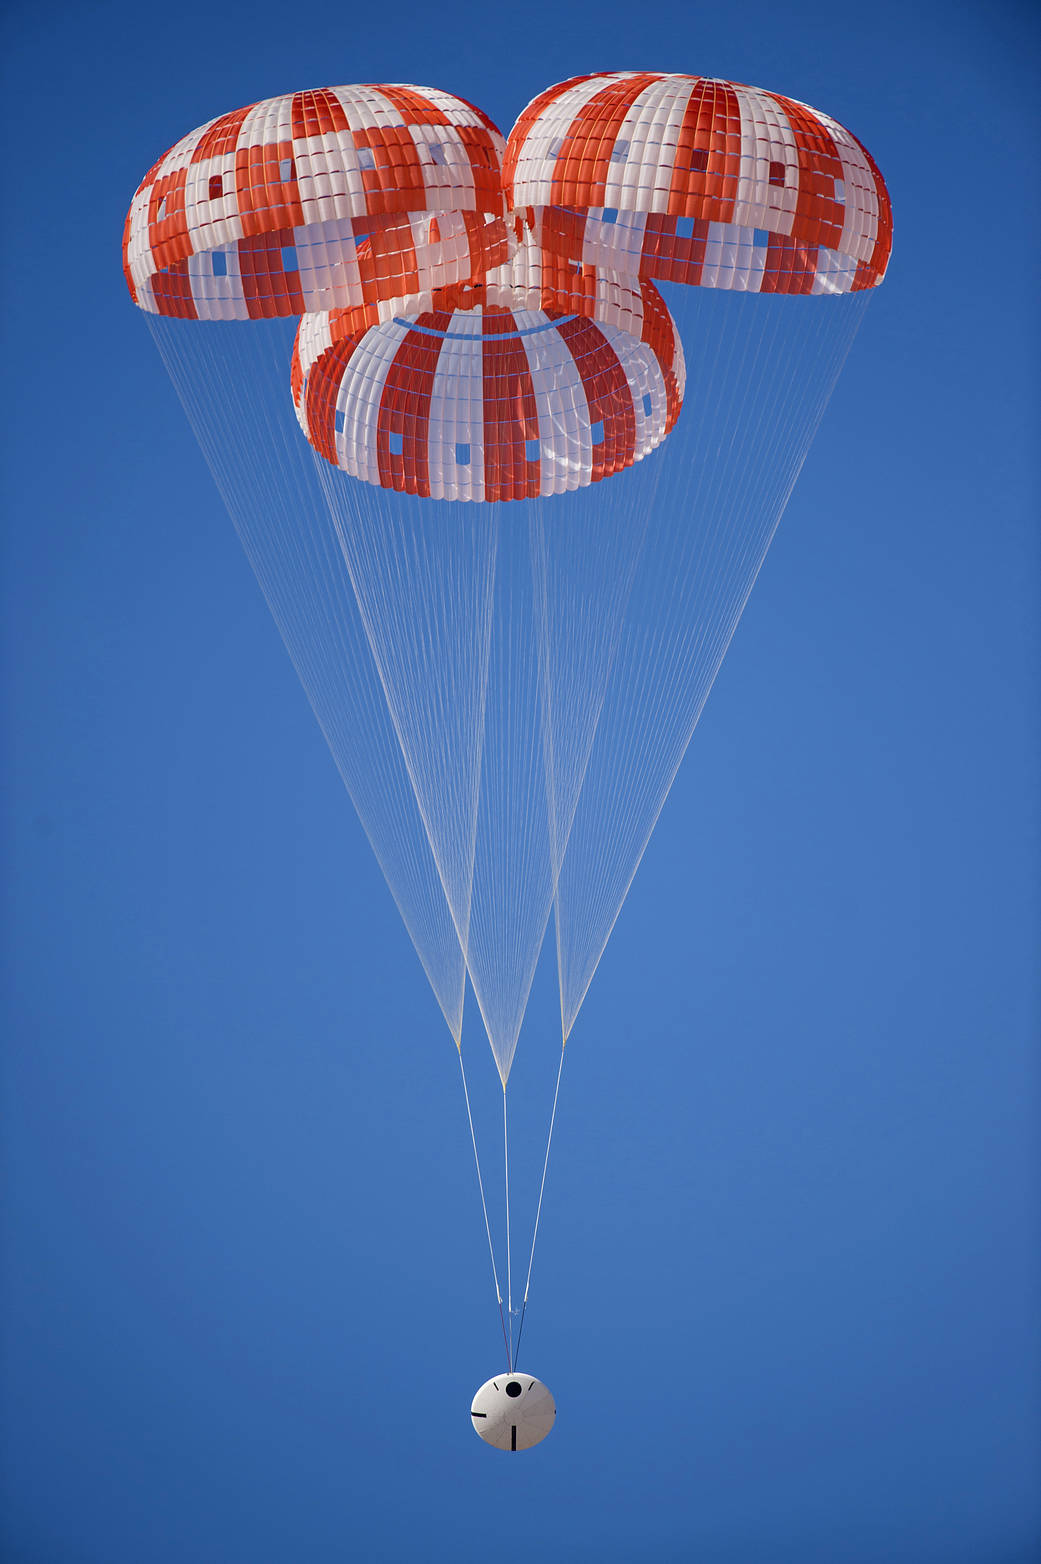 Orion Parachute Testing March 8th 2017